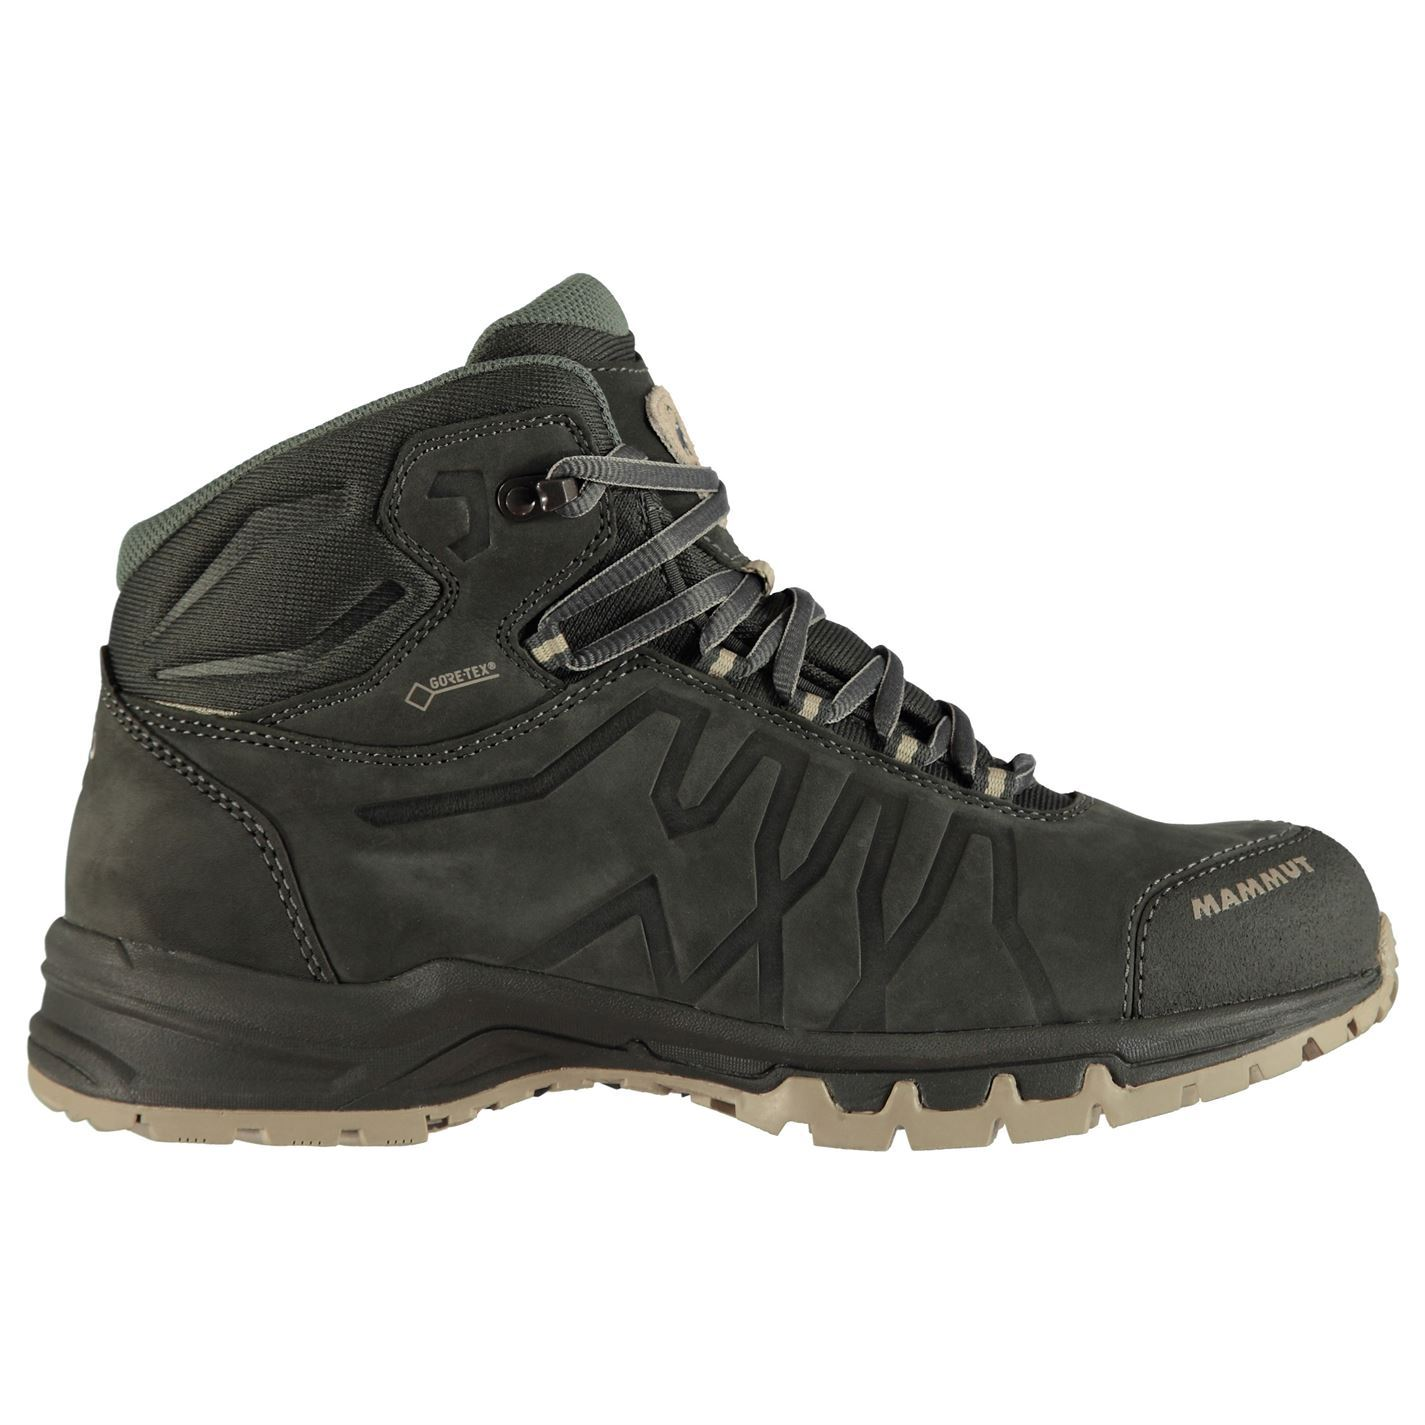 promo code a2f80 14b7a Details about Mammut Mercury Mid III GTX Walking Boots Mens Grey Hiking  Footwear Shoes